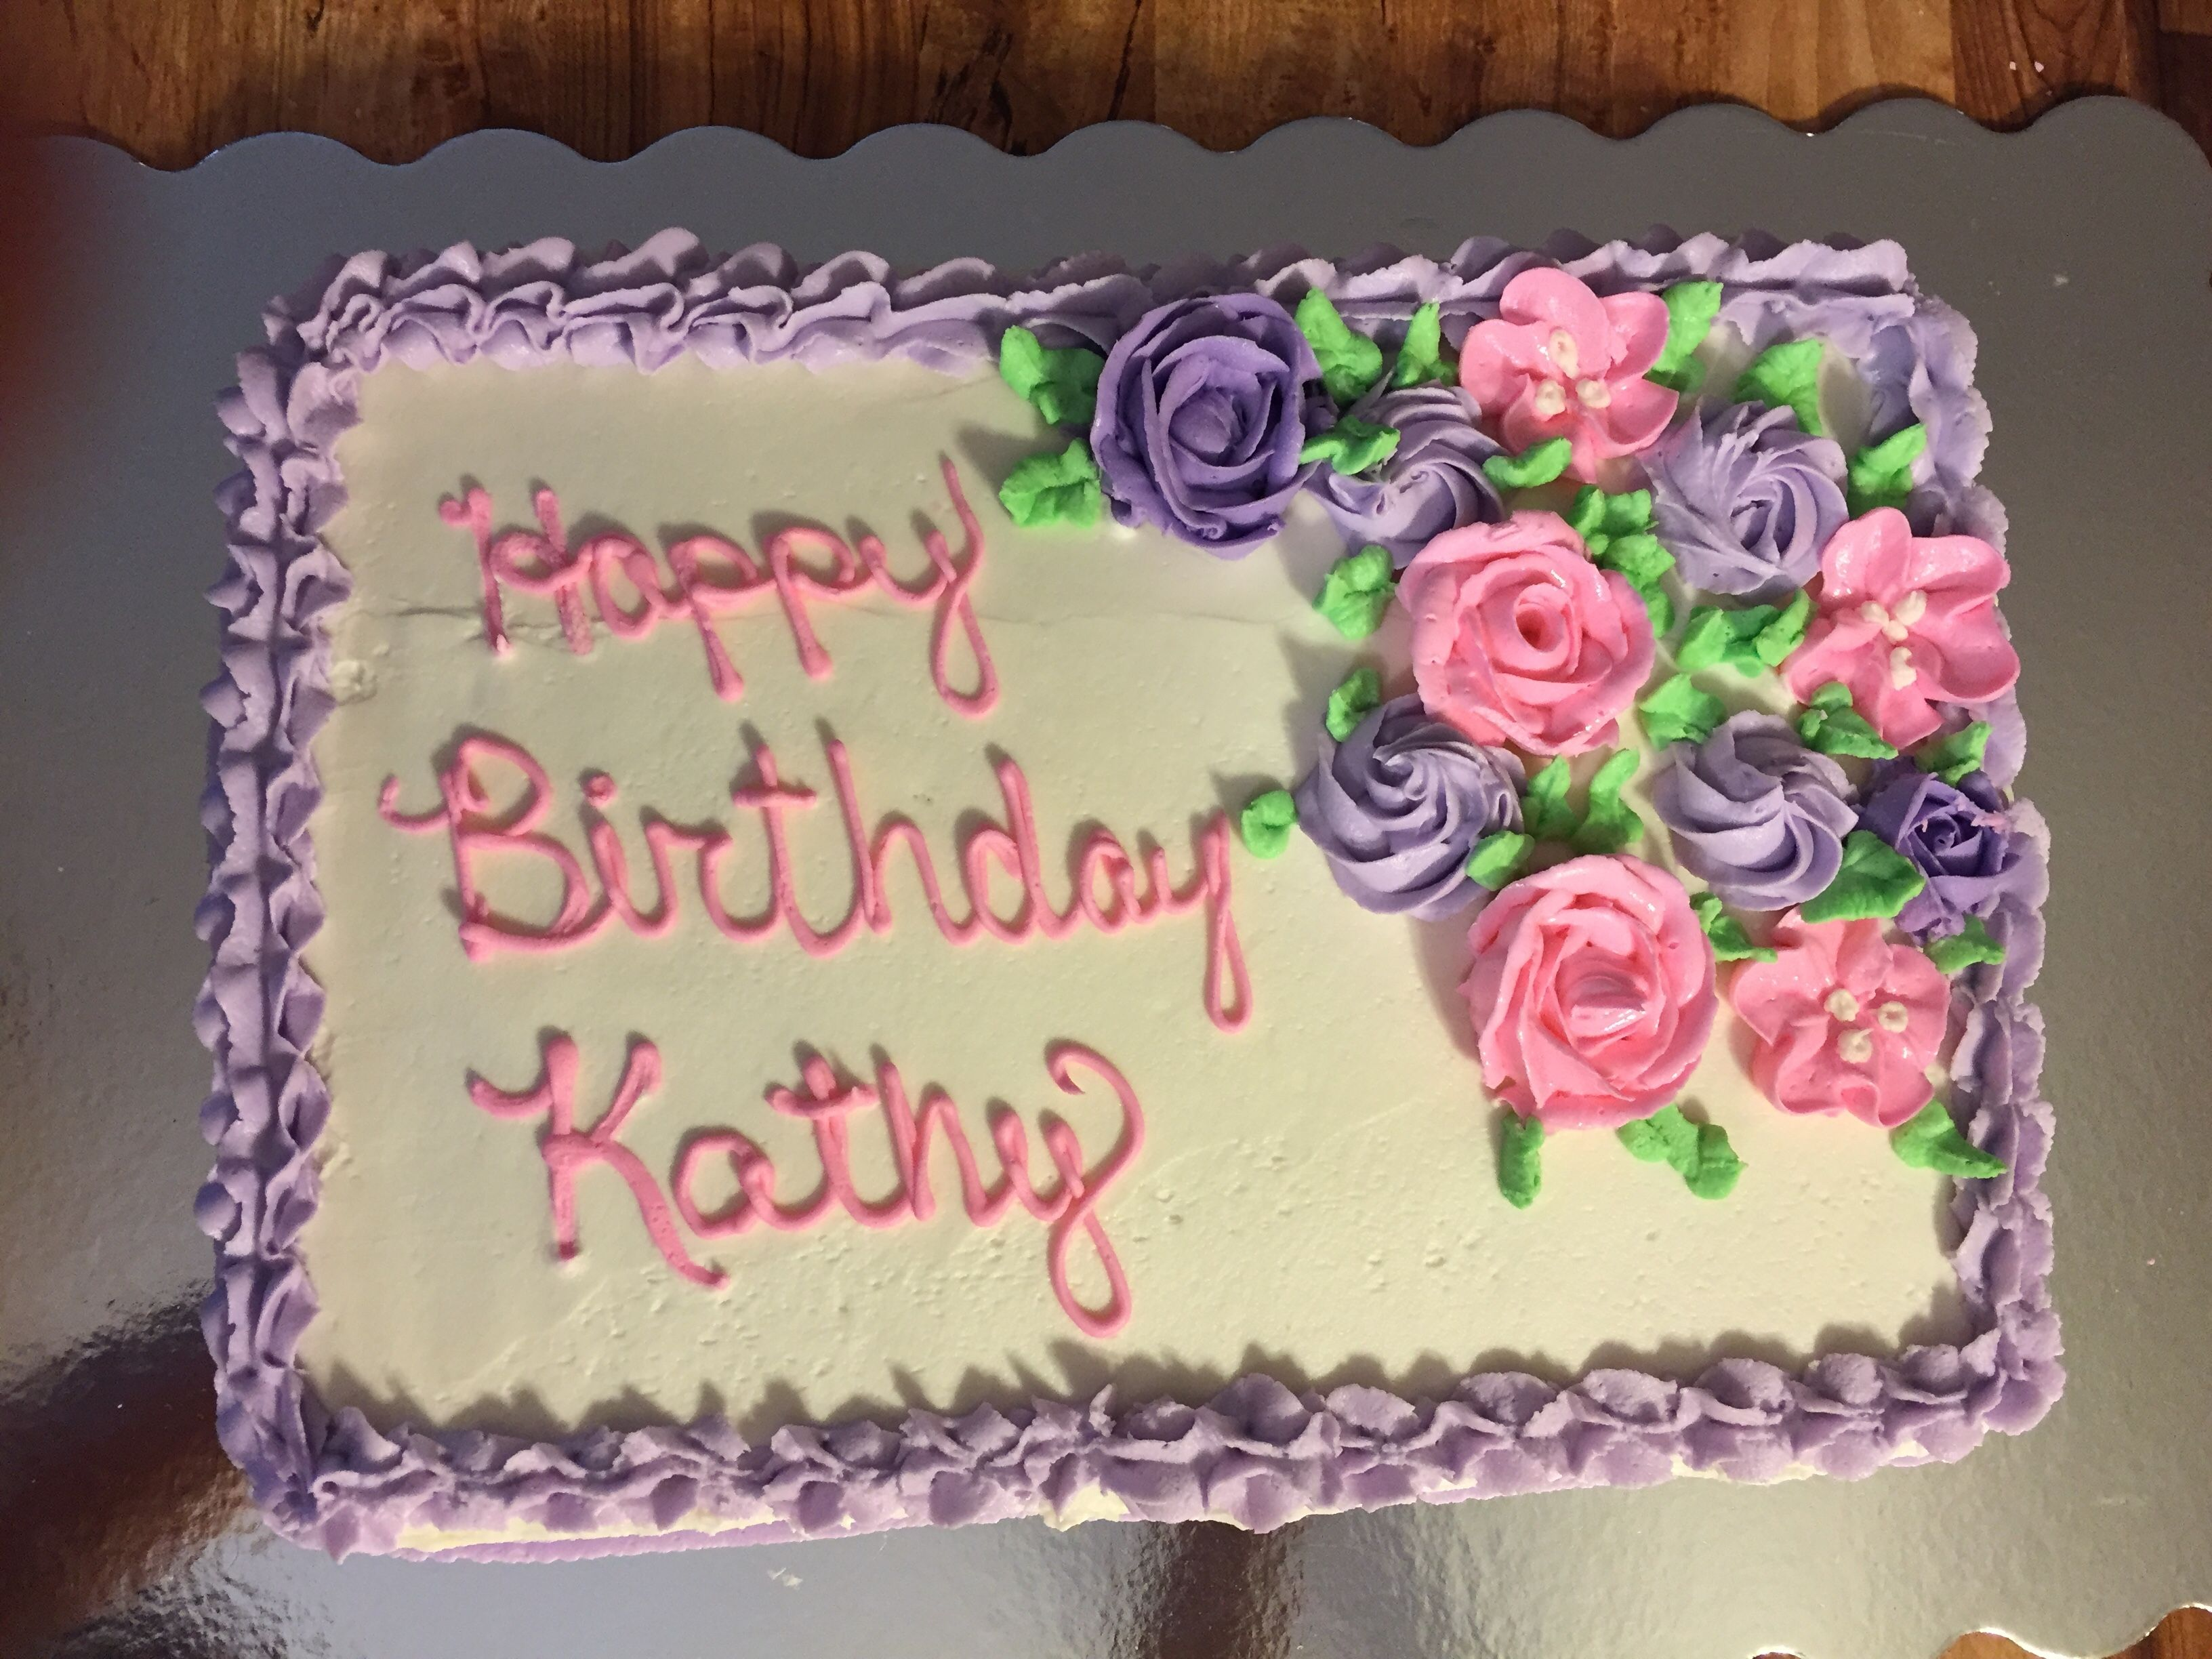 Pin By Alicia Kerfoot On Deli Ideas Pinterest Cake Cake Designs